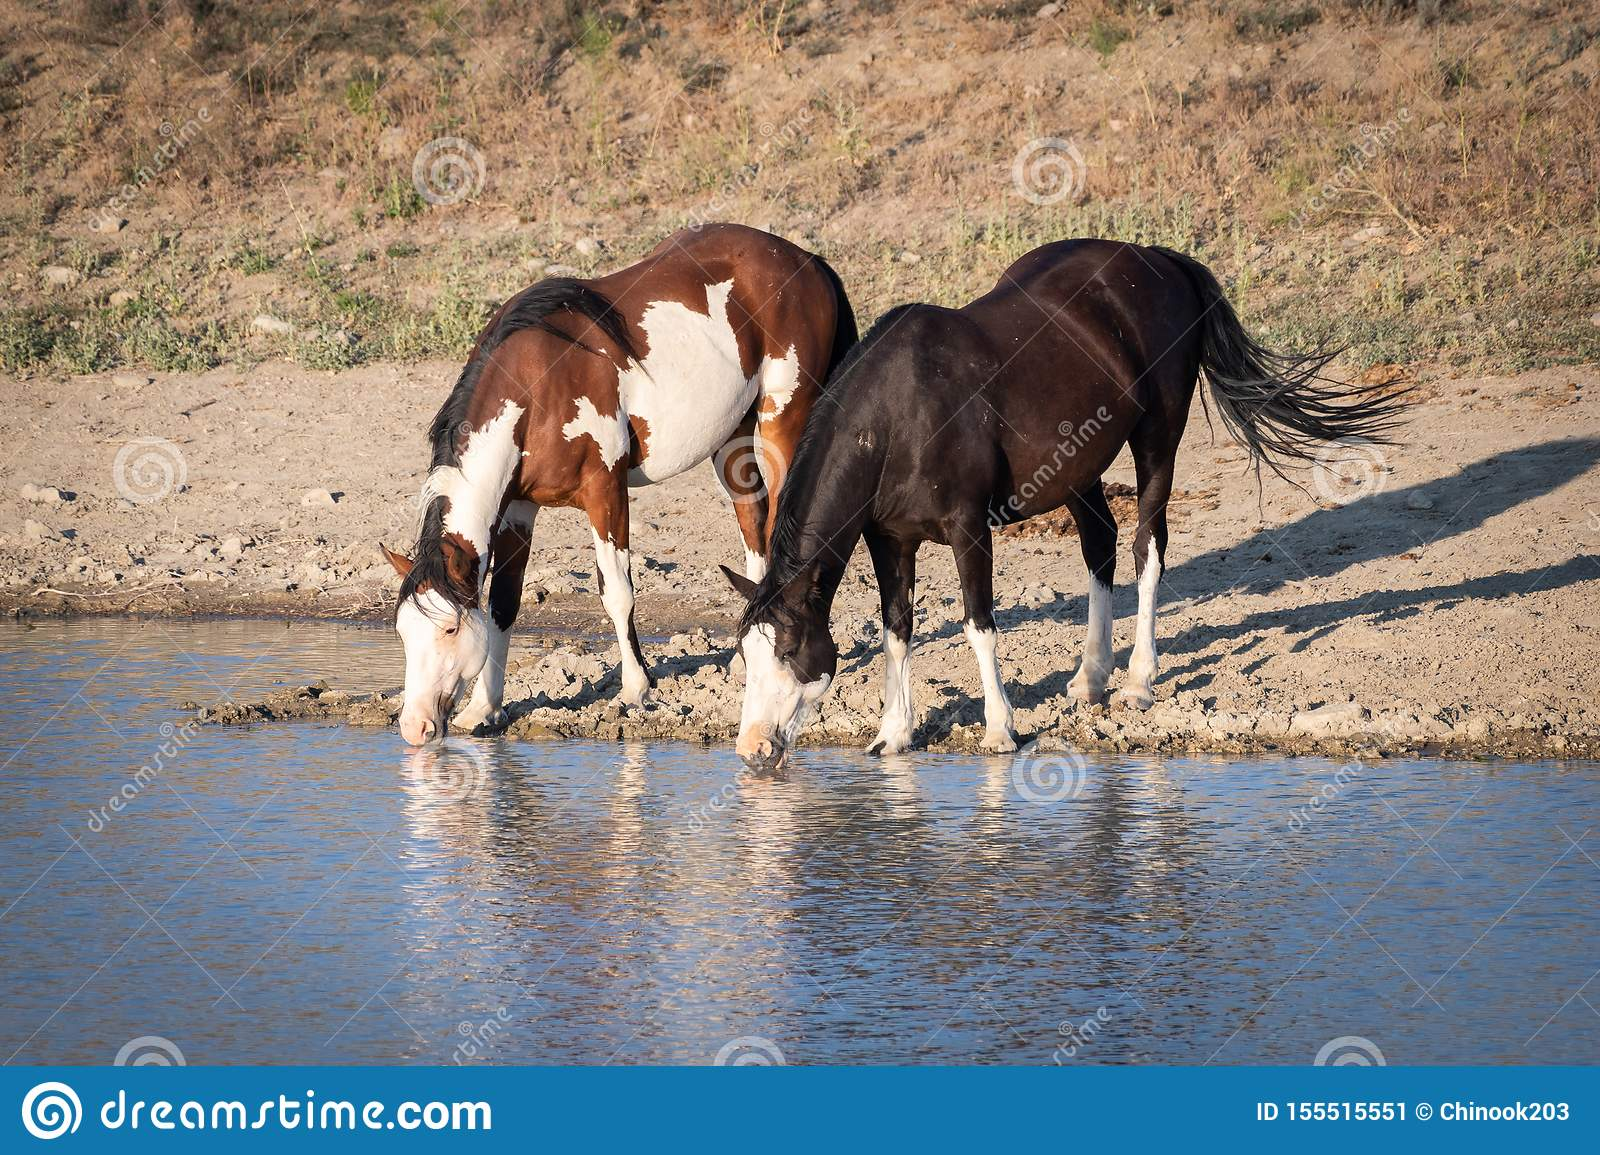 Two Wild Horses Drinking Water At A Pond Stock Image Image Of Pair Equine 155515551